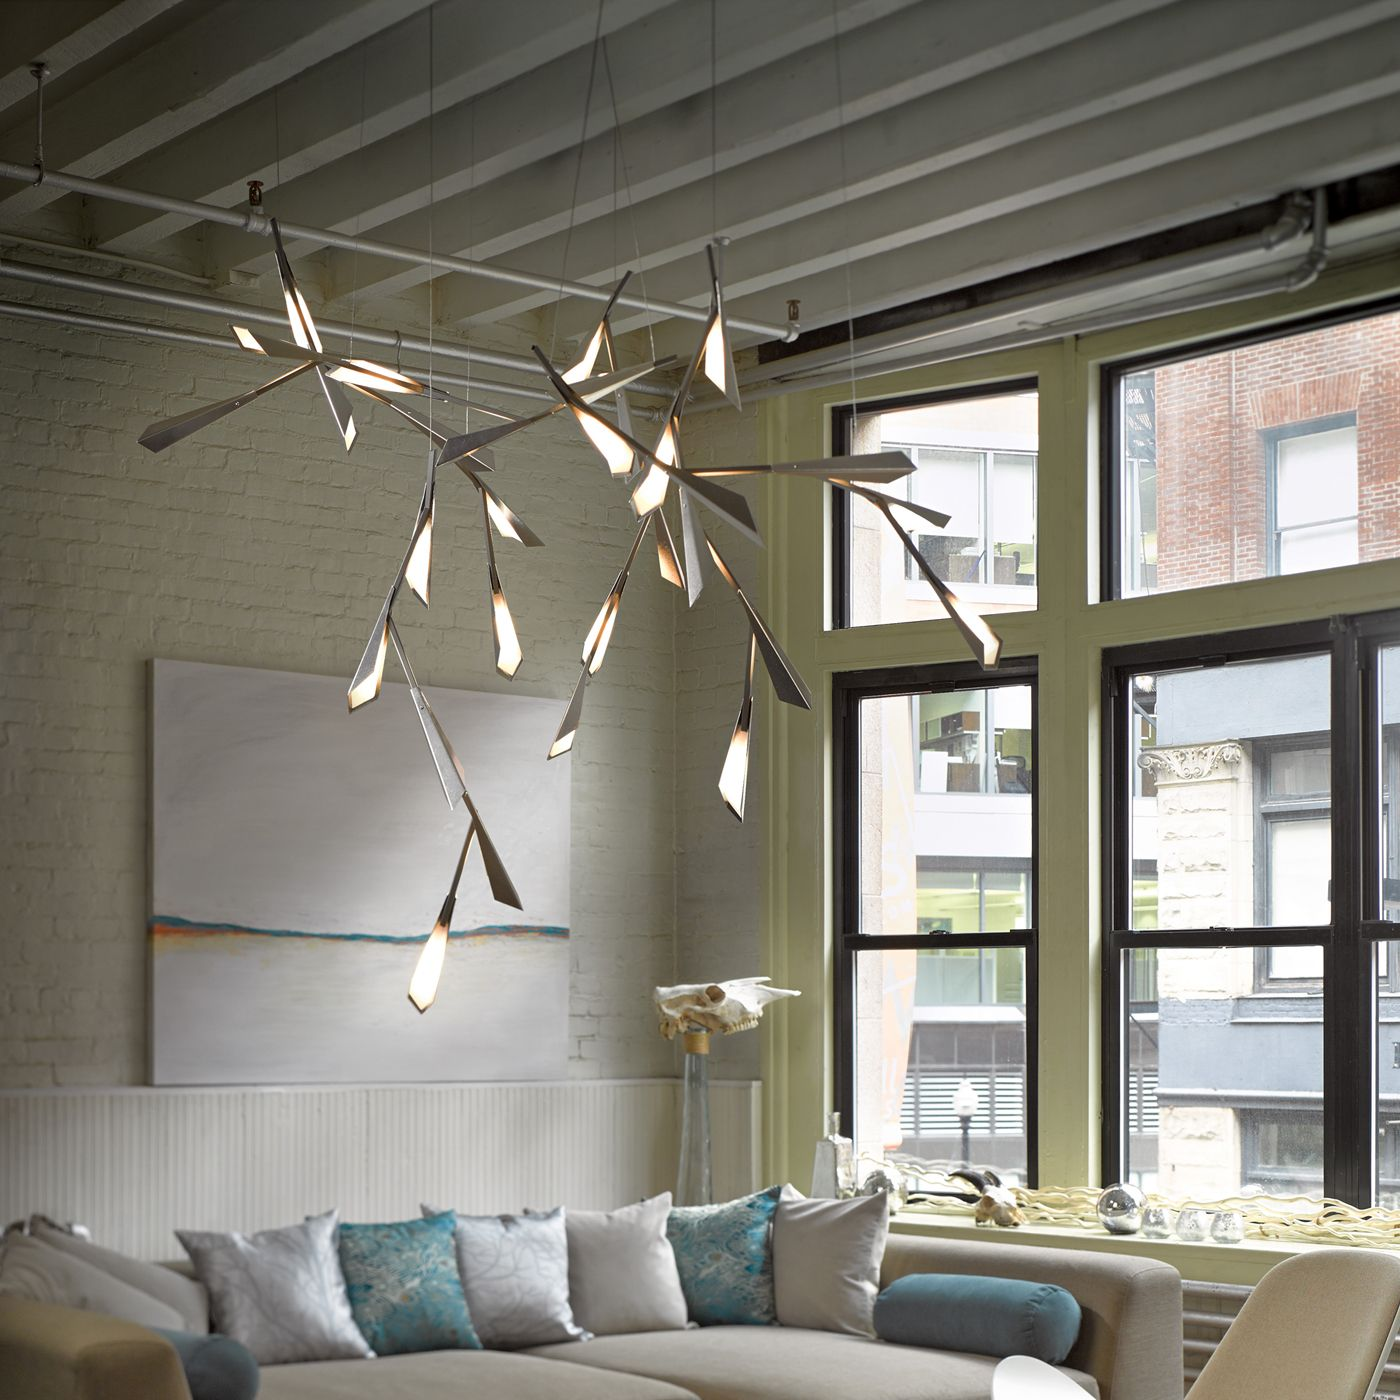 Hubbardton forge no quill large pendant illuminated style hubbardton forge wins iida best lighting award with the quill aloadofball Images